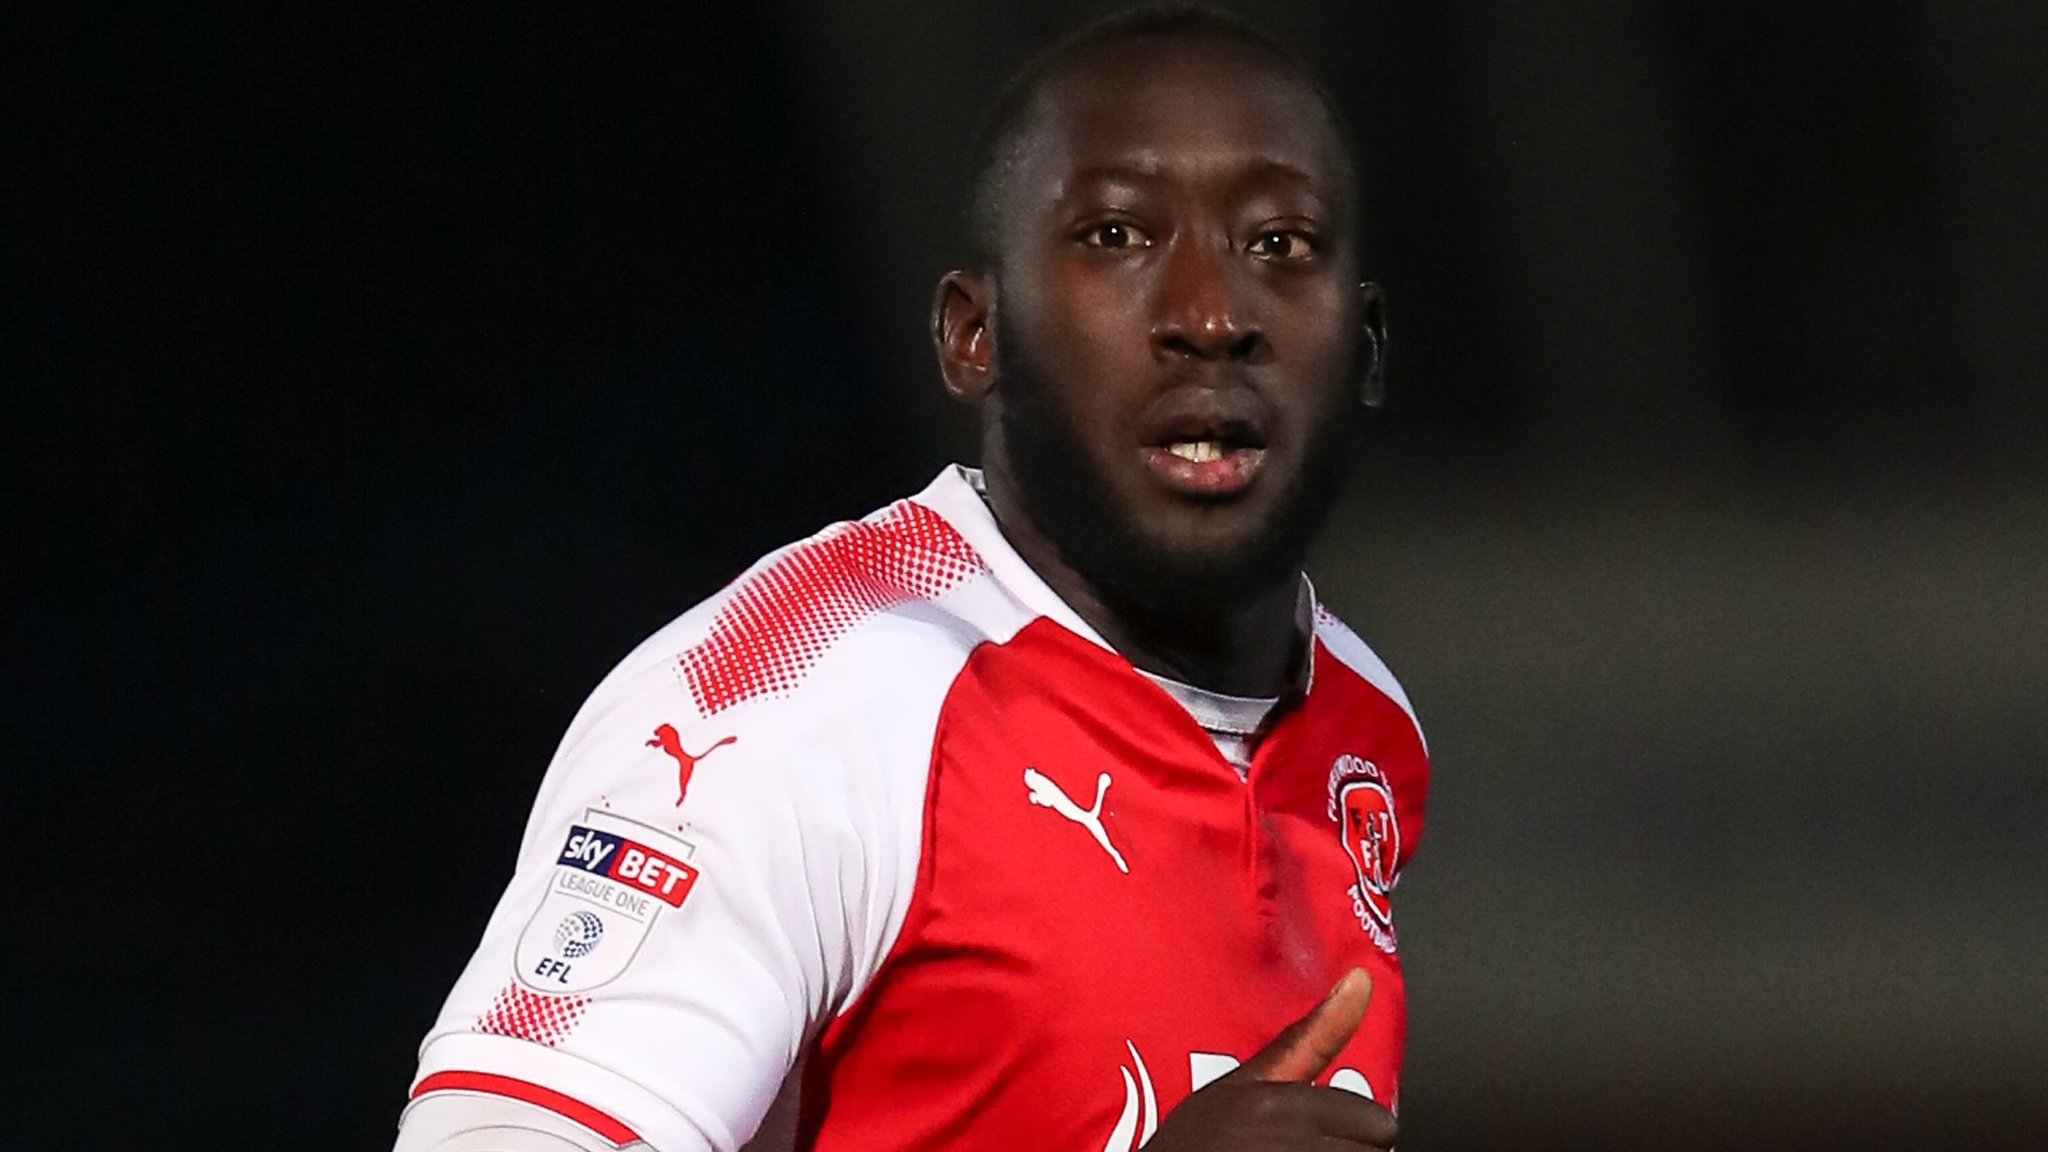 Toumani Diagouraga: Swindon Town sign Fleetwood Town midfielder